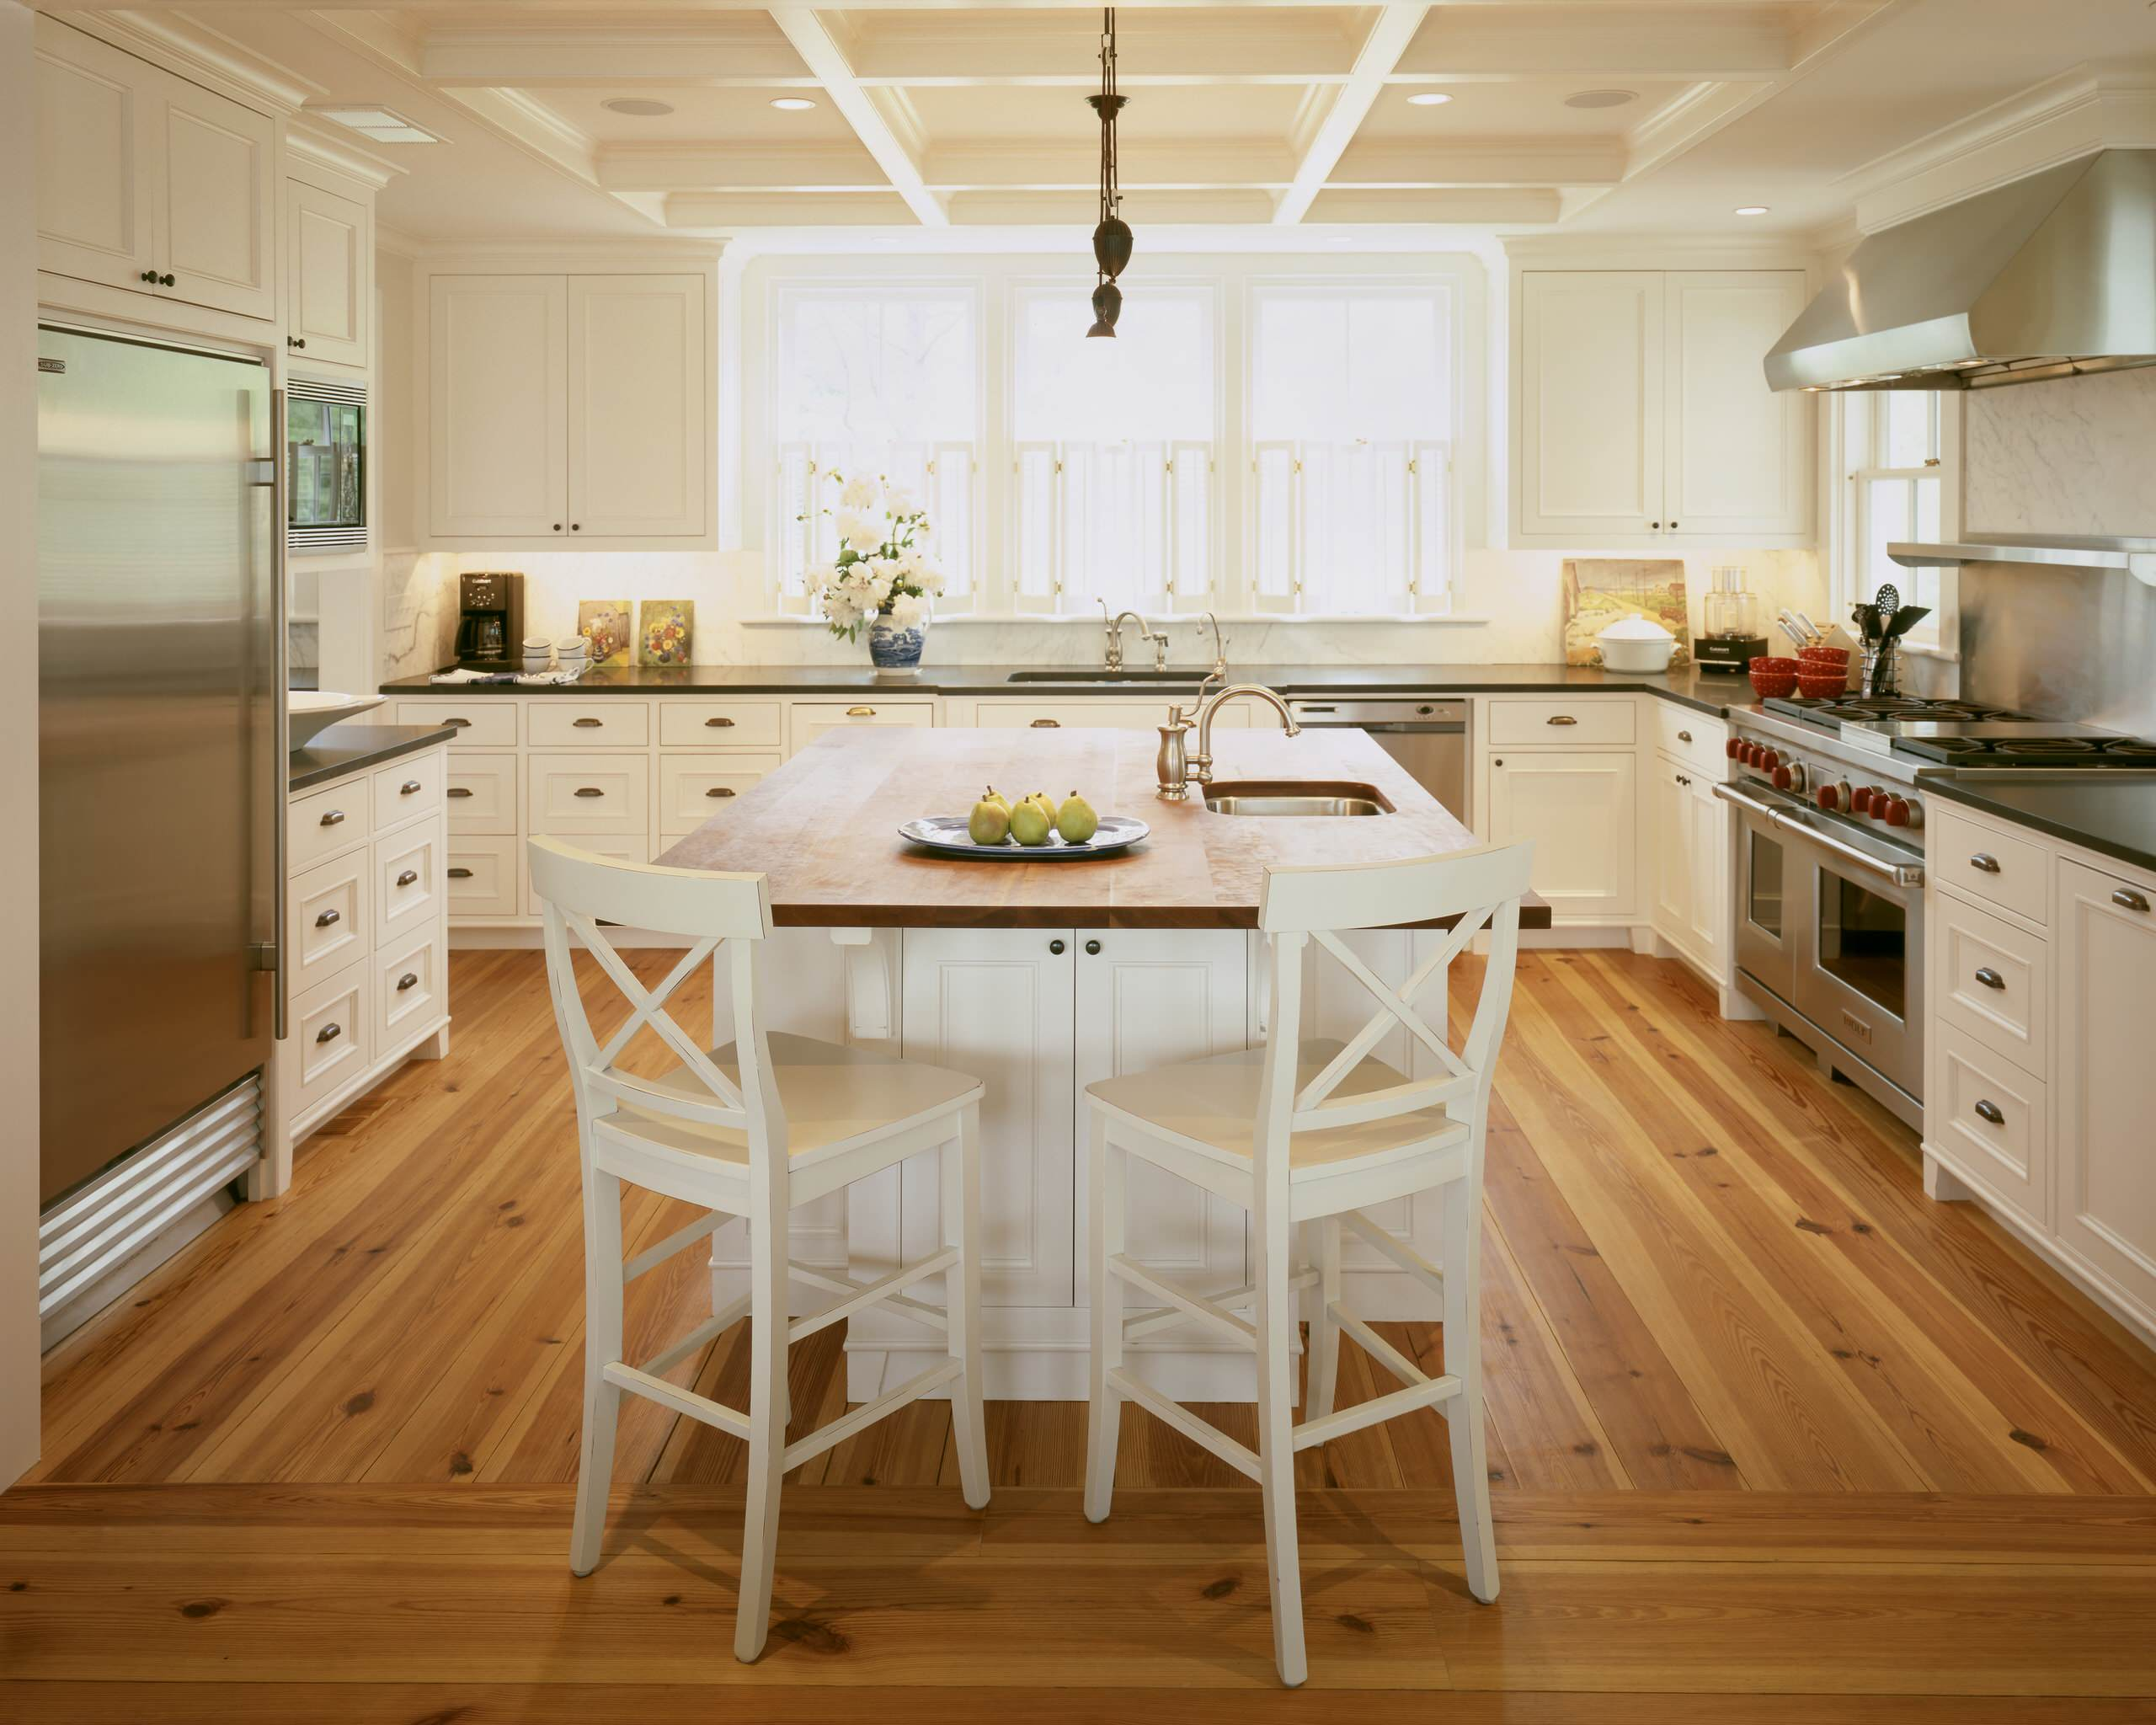 White cabinets with wood floors Traditional Kitchen coffered ceiling white barstools wood counter